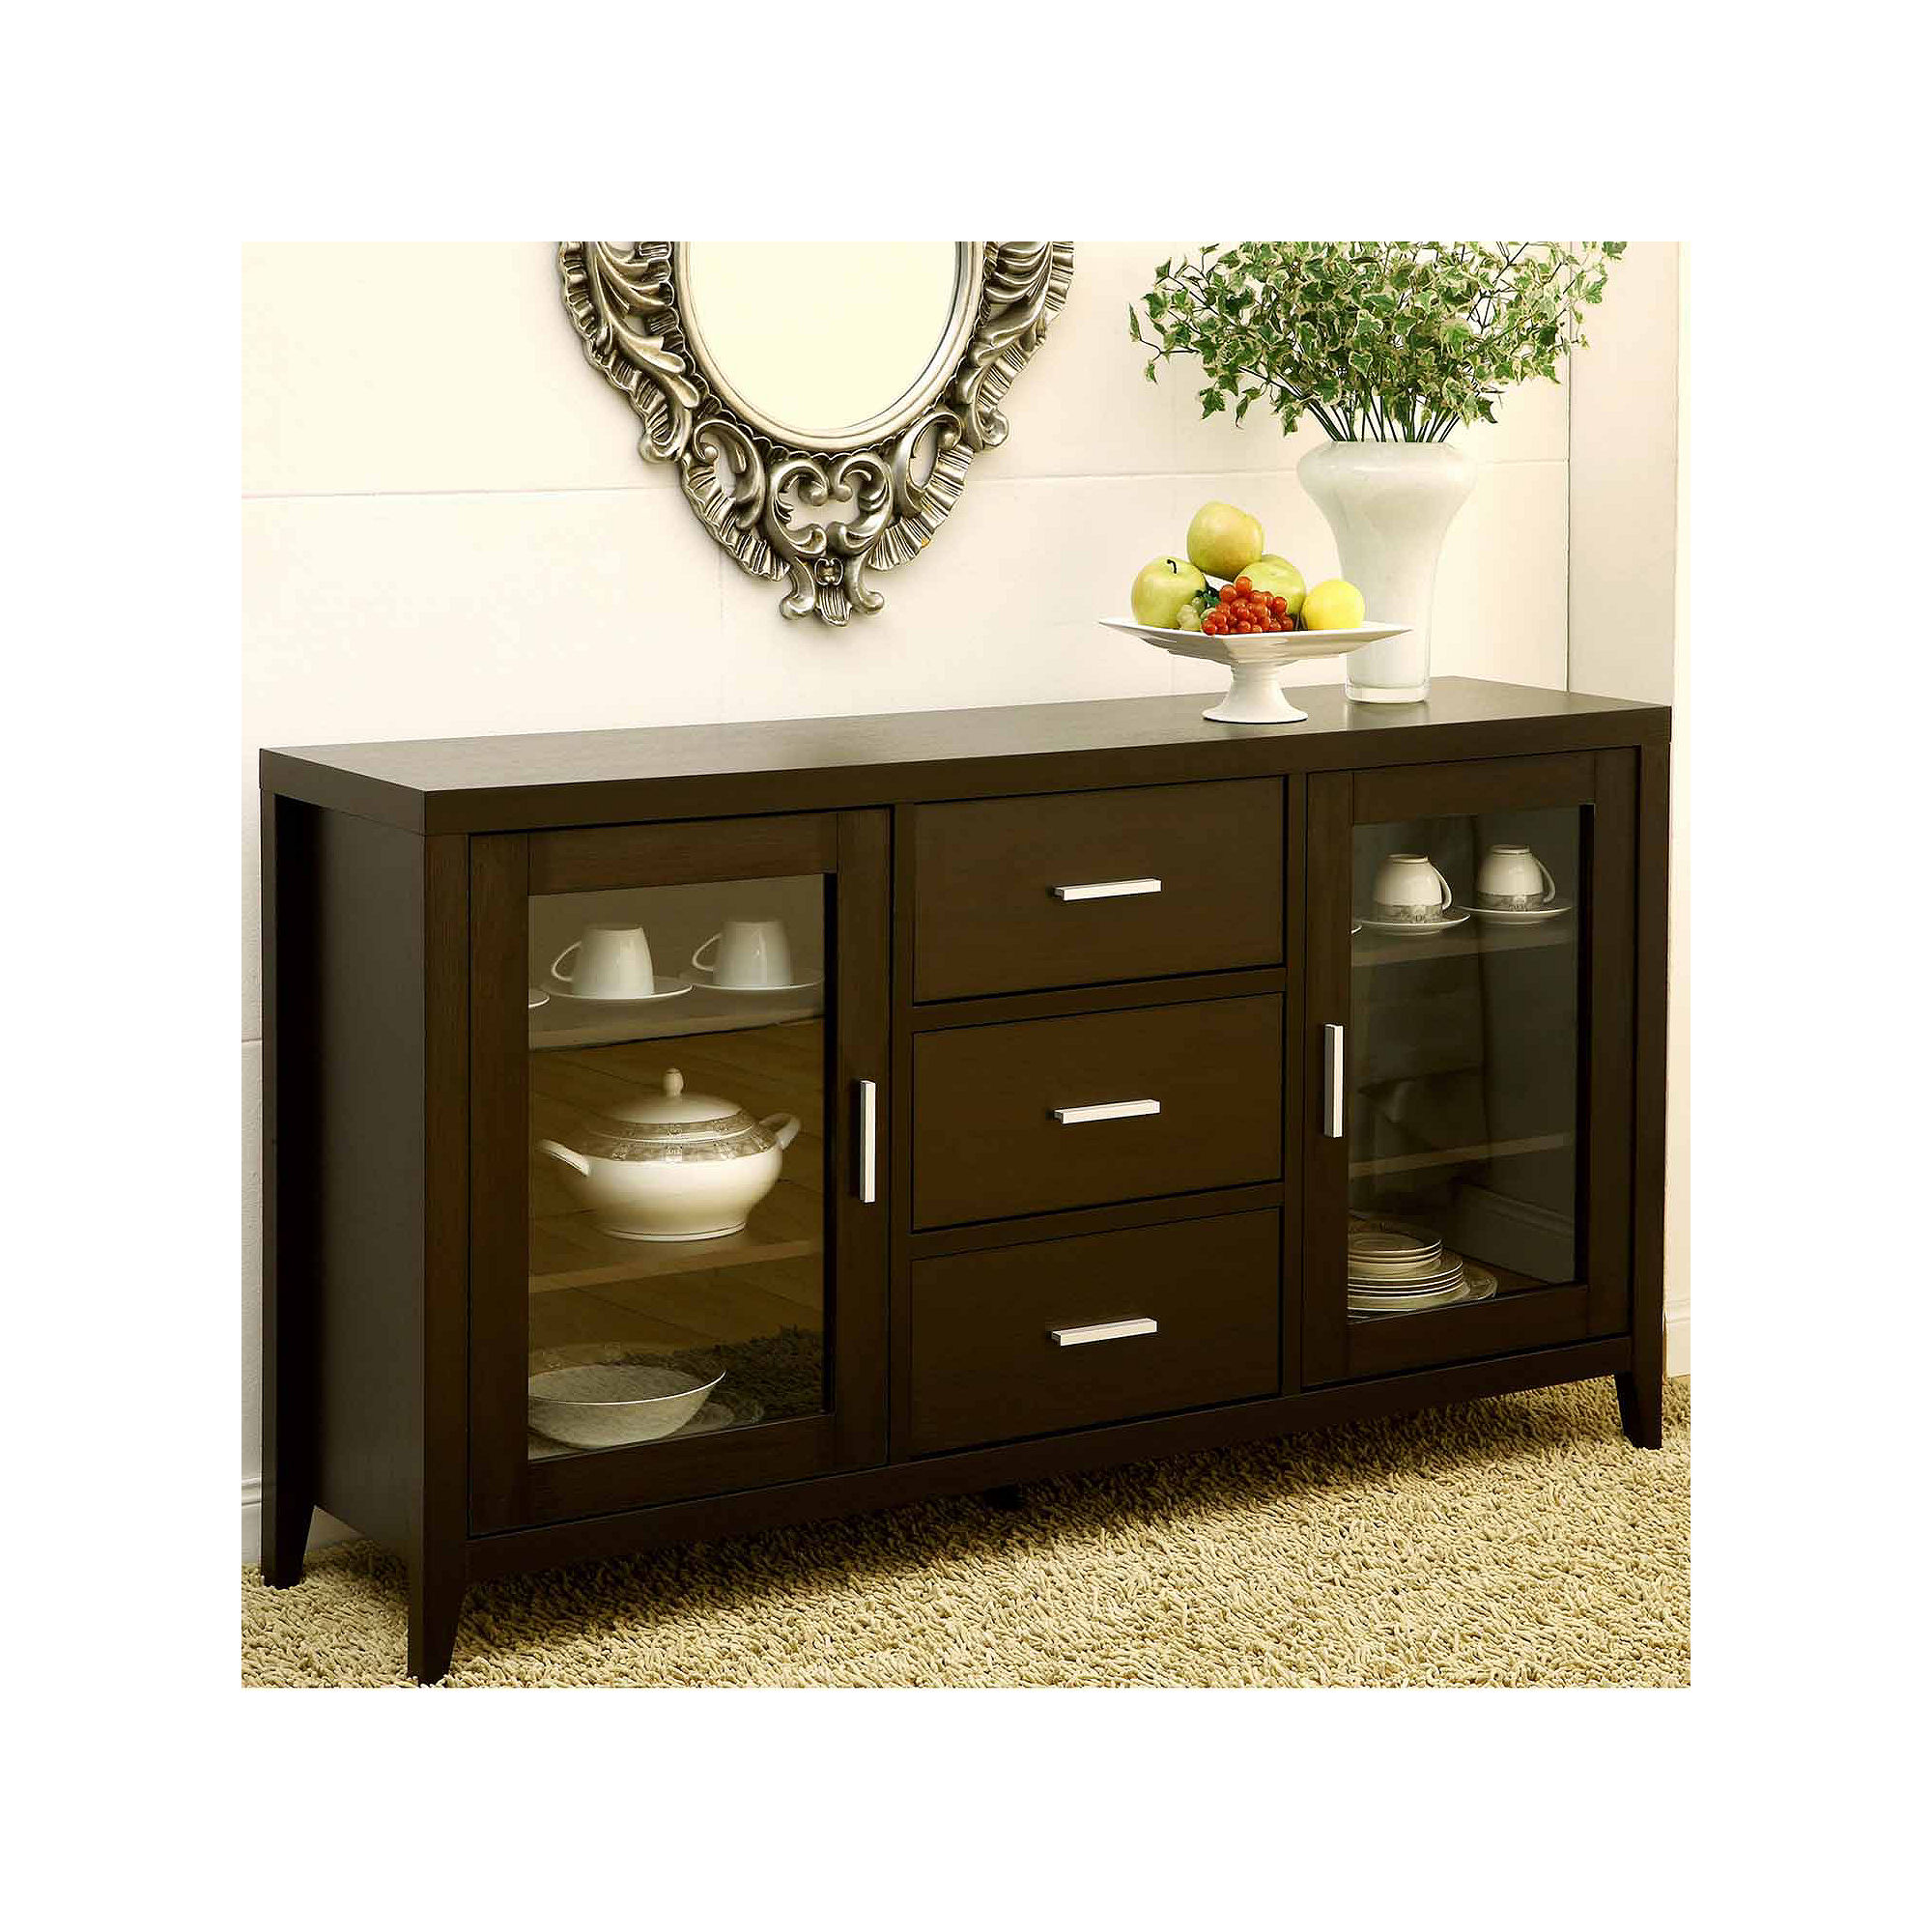 Weexer Buffet with Glass Cabinets